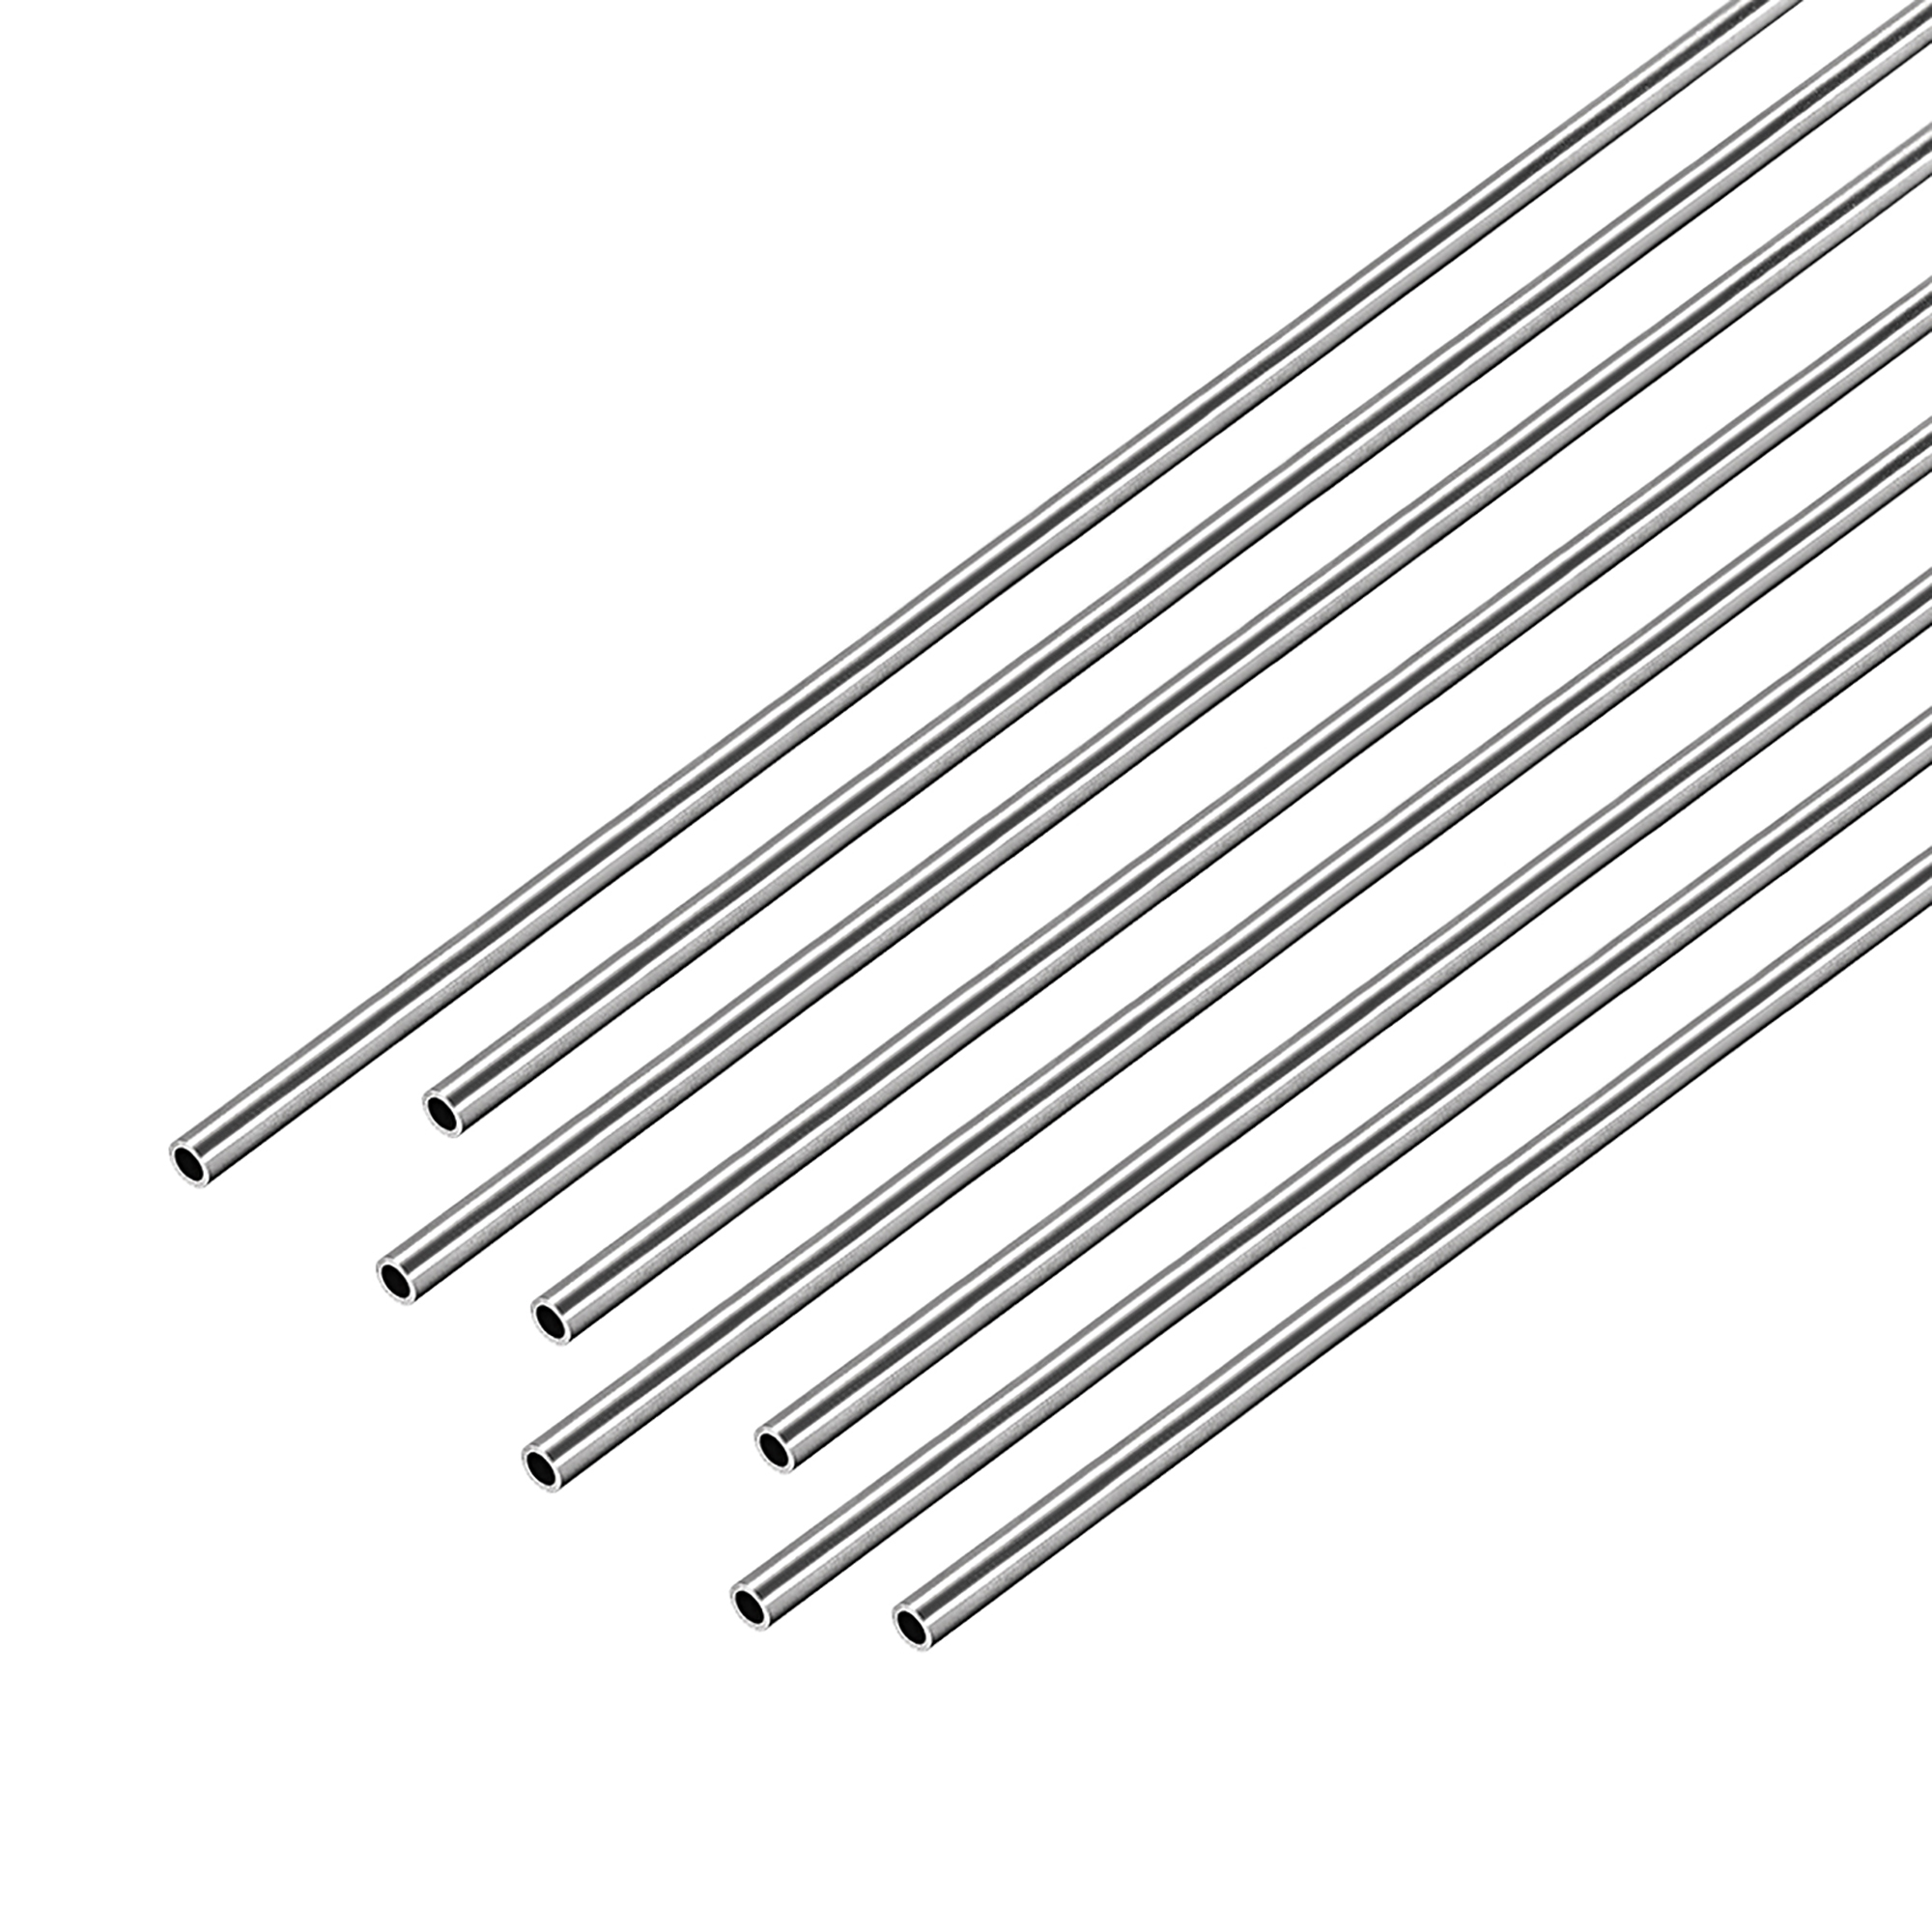 SS304 Stainless Steel  Straight Tubing Pipe 1.8mm OD X 0.1 Wall-length by order